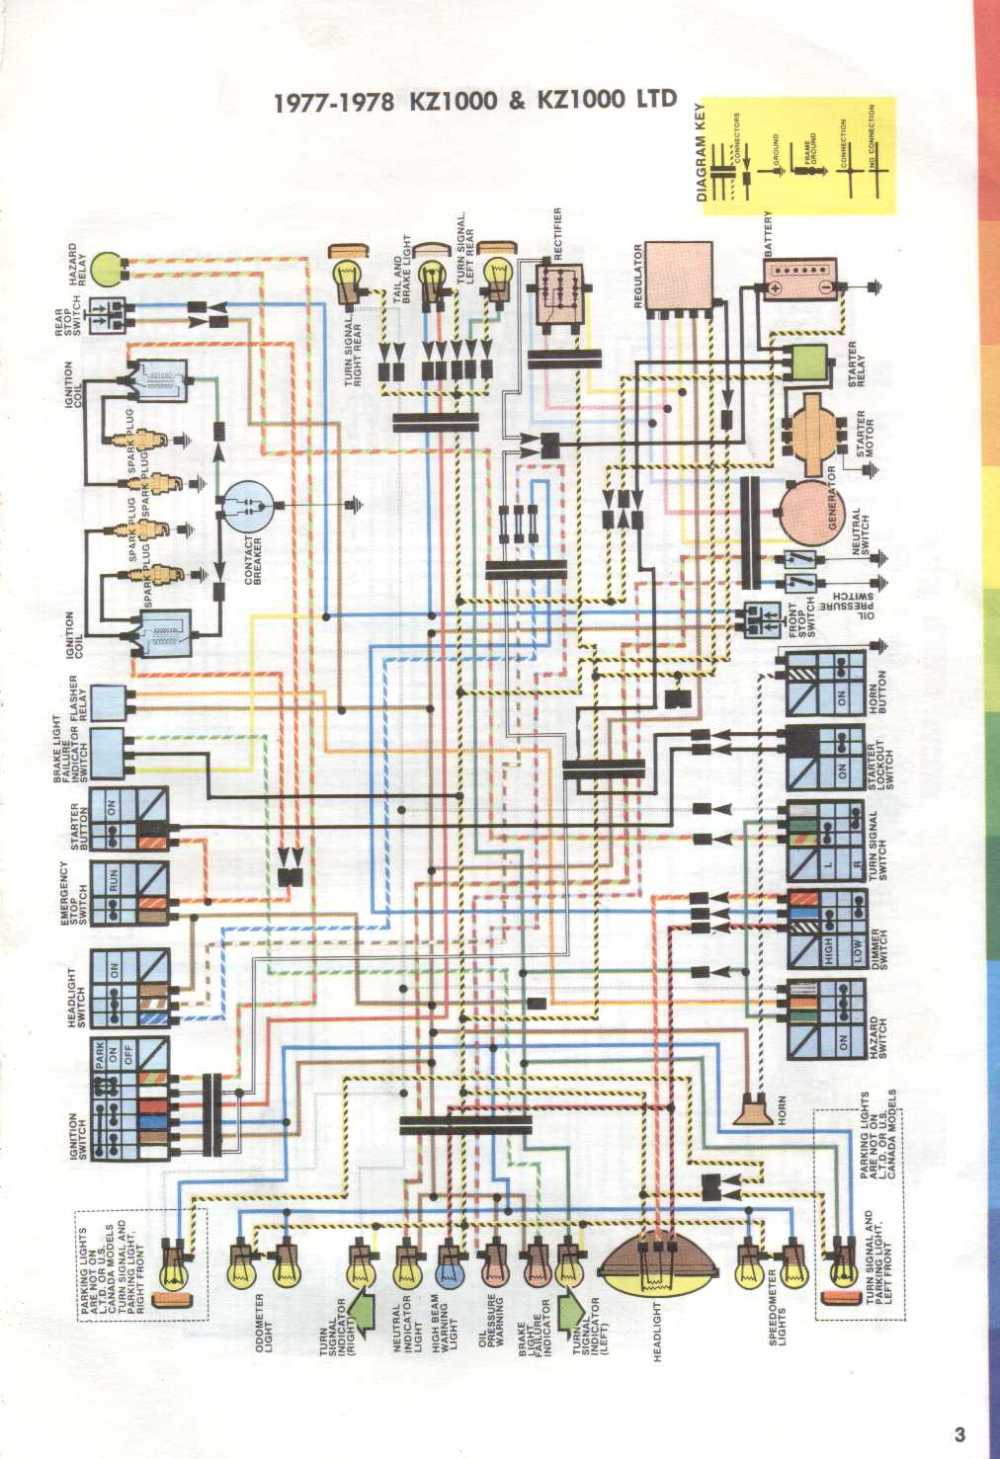 medium resolution of wiring diagram for 1977 1978 kawasaki kz1000 and kz1000ltd evan kz1000 wiring diagram picture